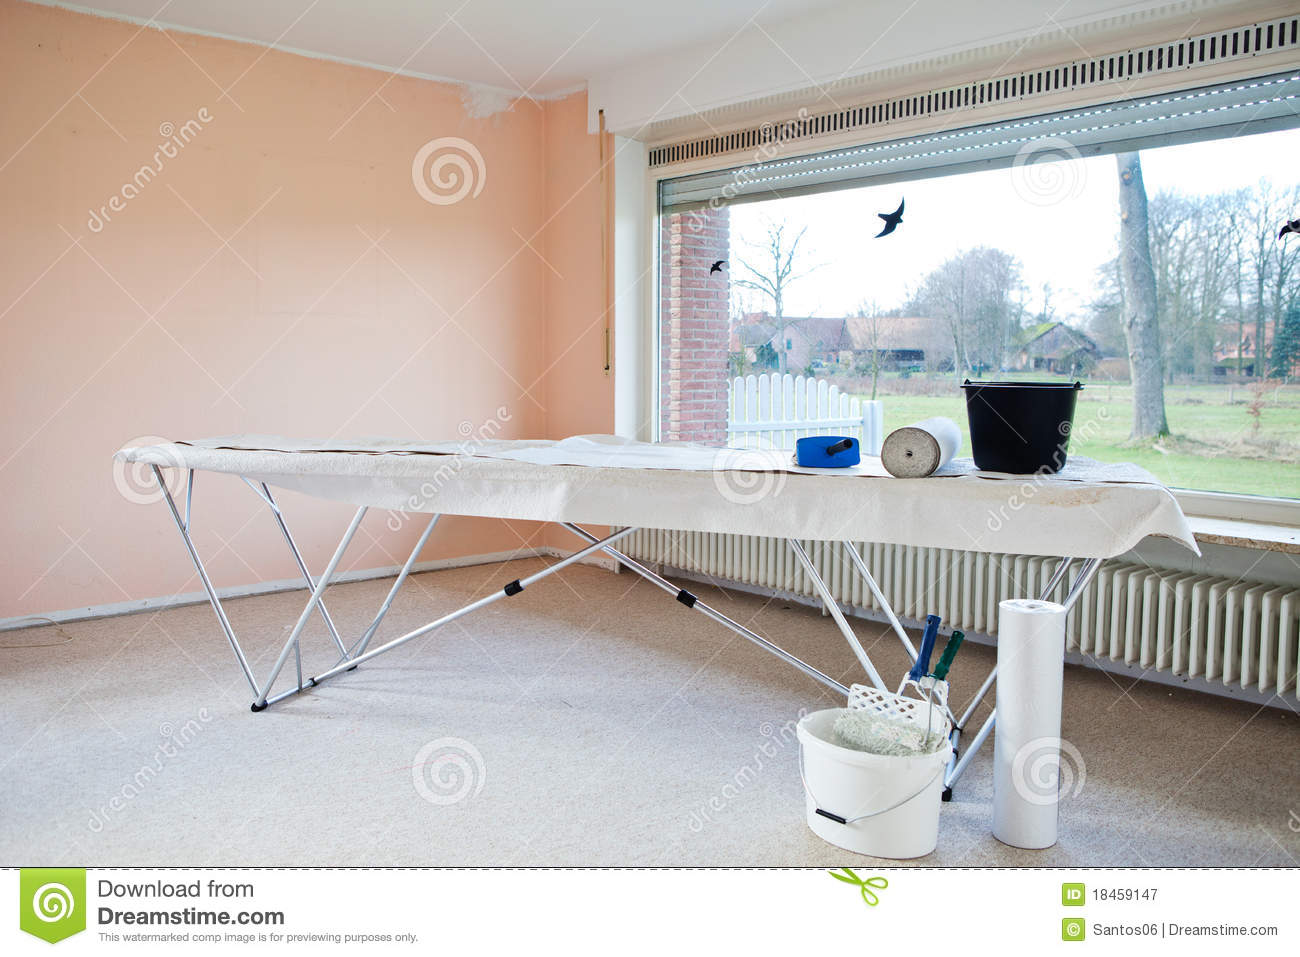 Table de papier peint